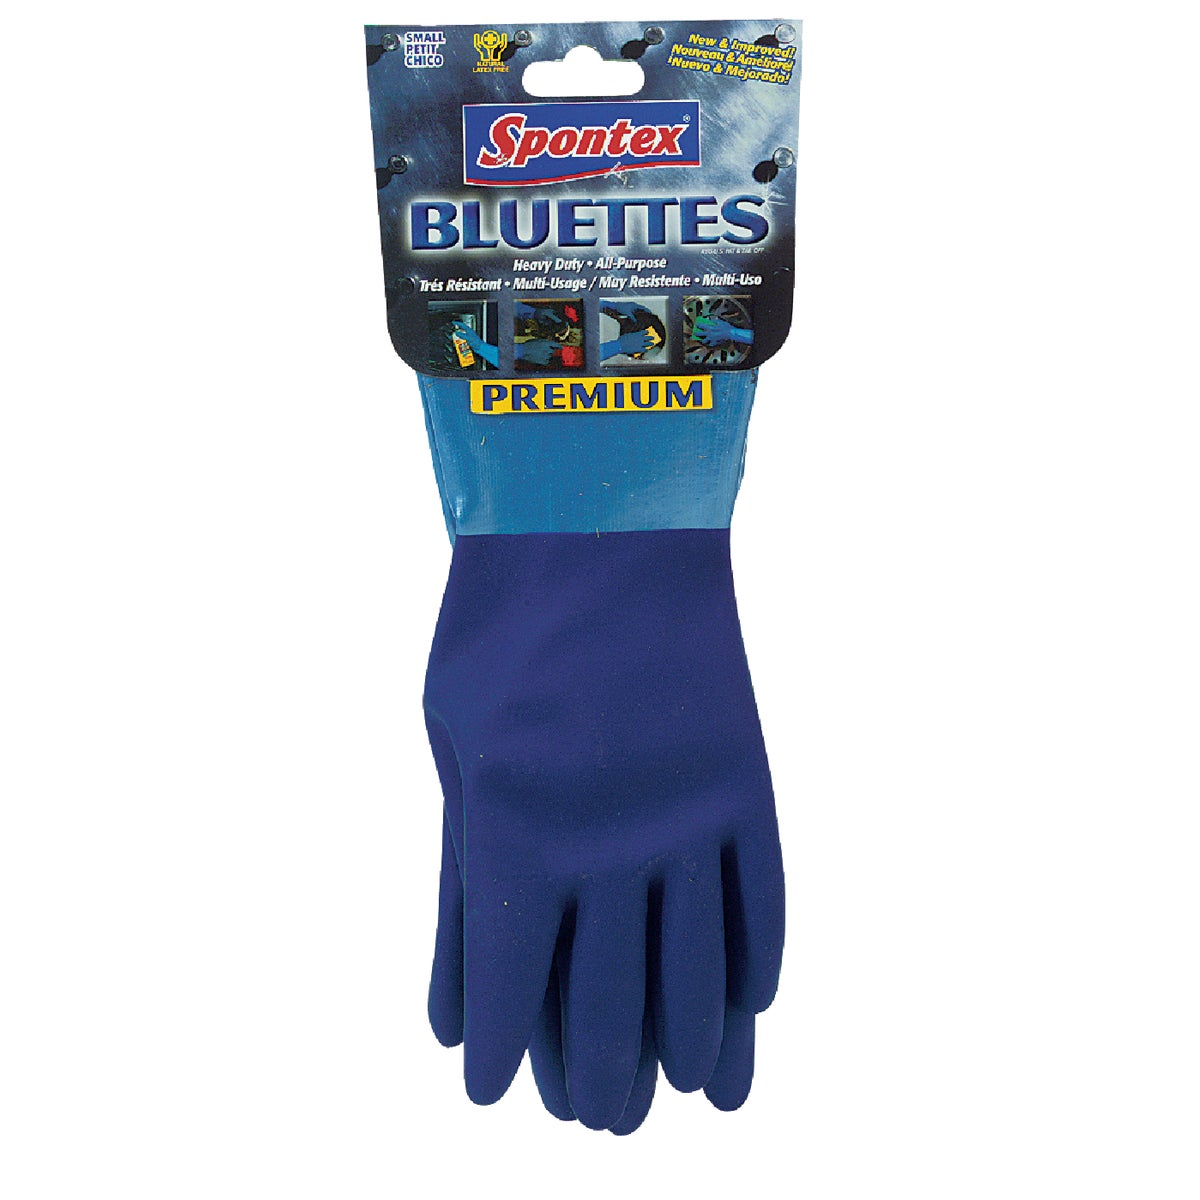 X-LARGE RUBBER GLOVES - 20005 by Lehigh Spontex